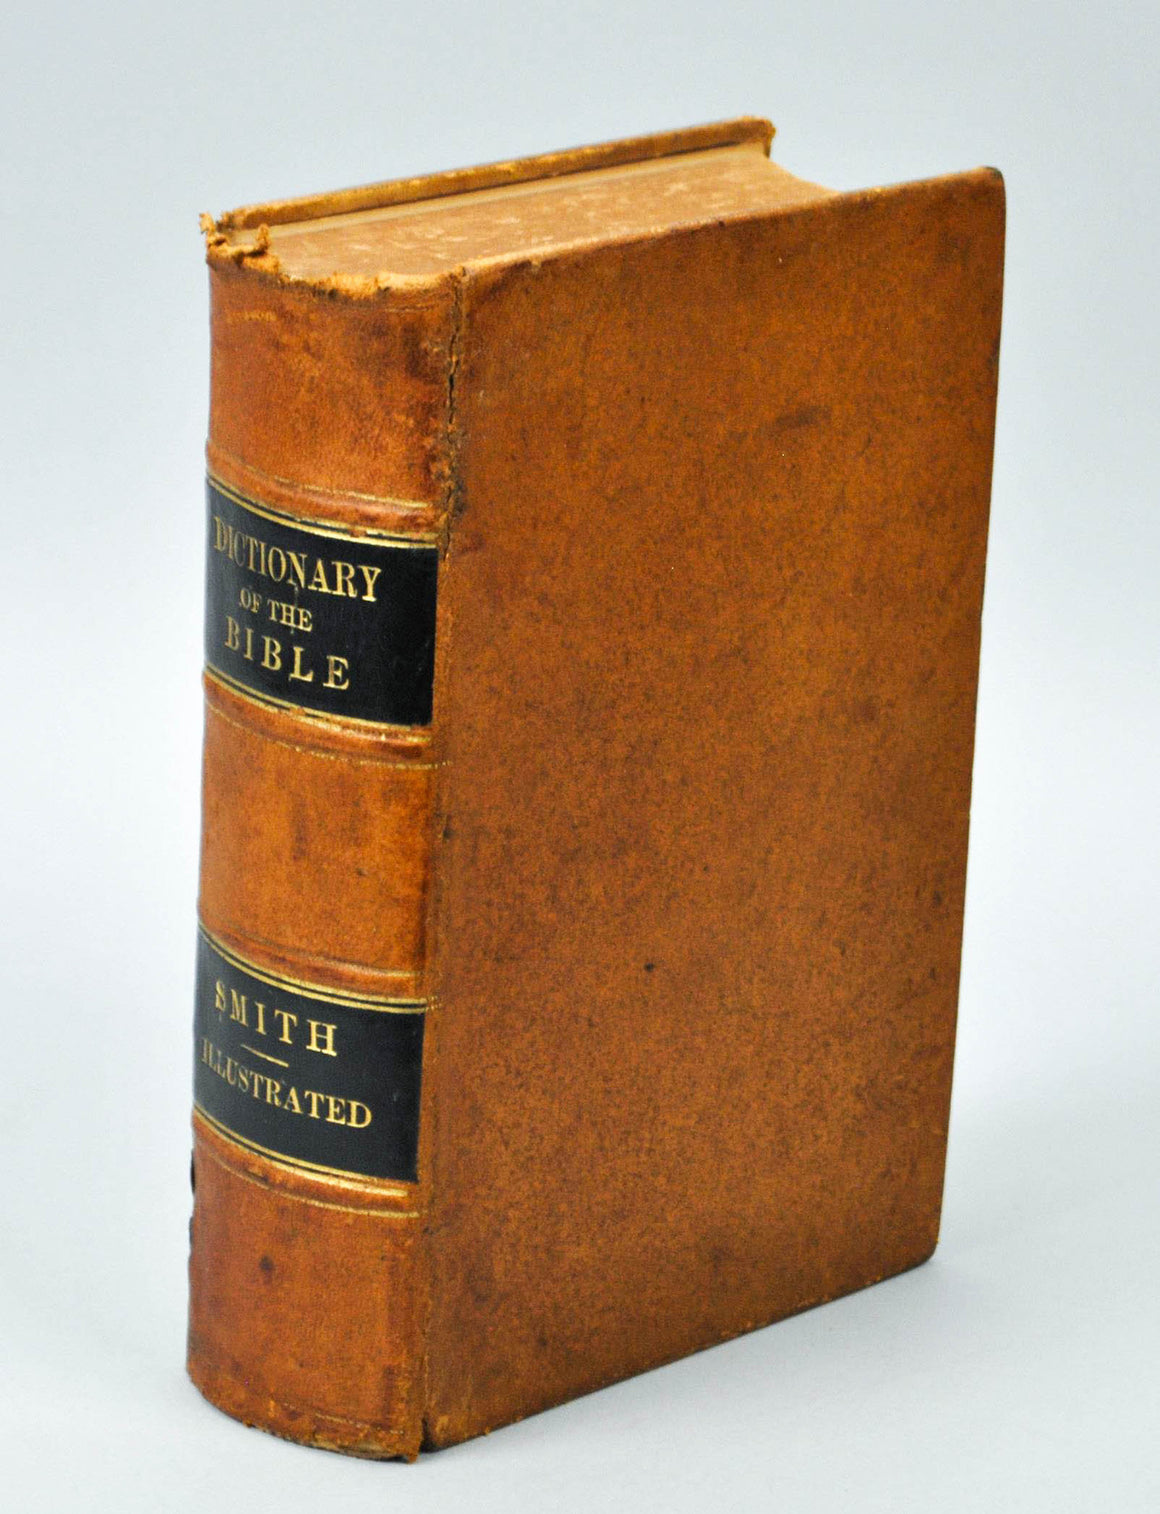 A Dictionary of the Bible Ed by William Smith 1870